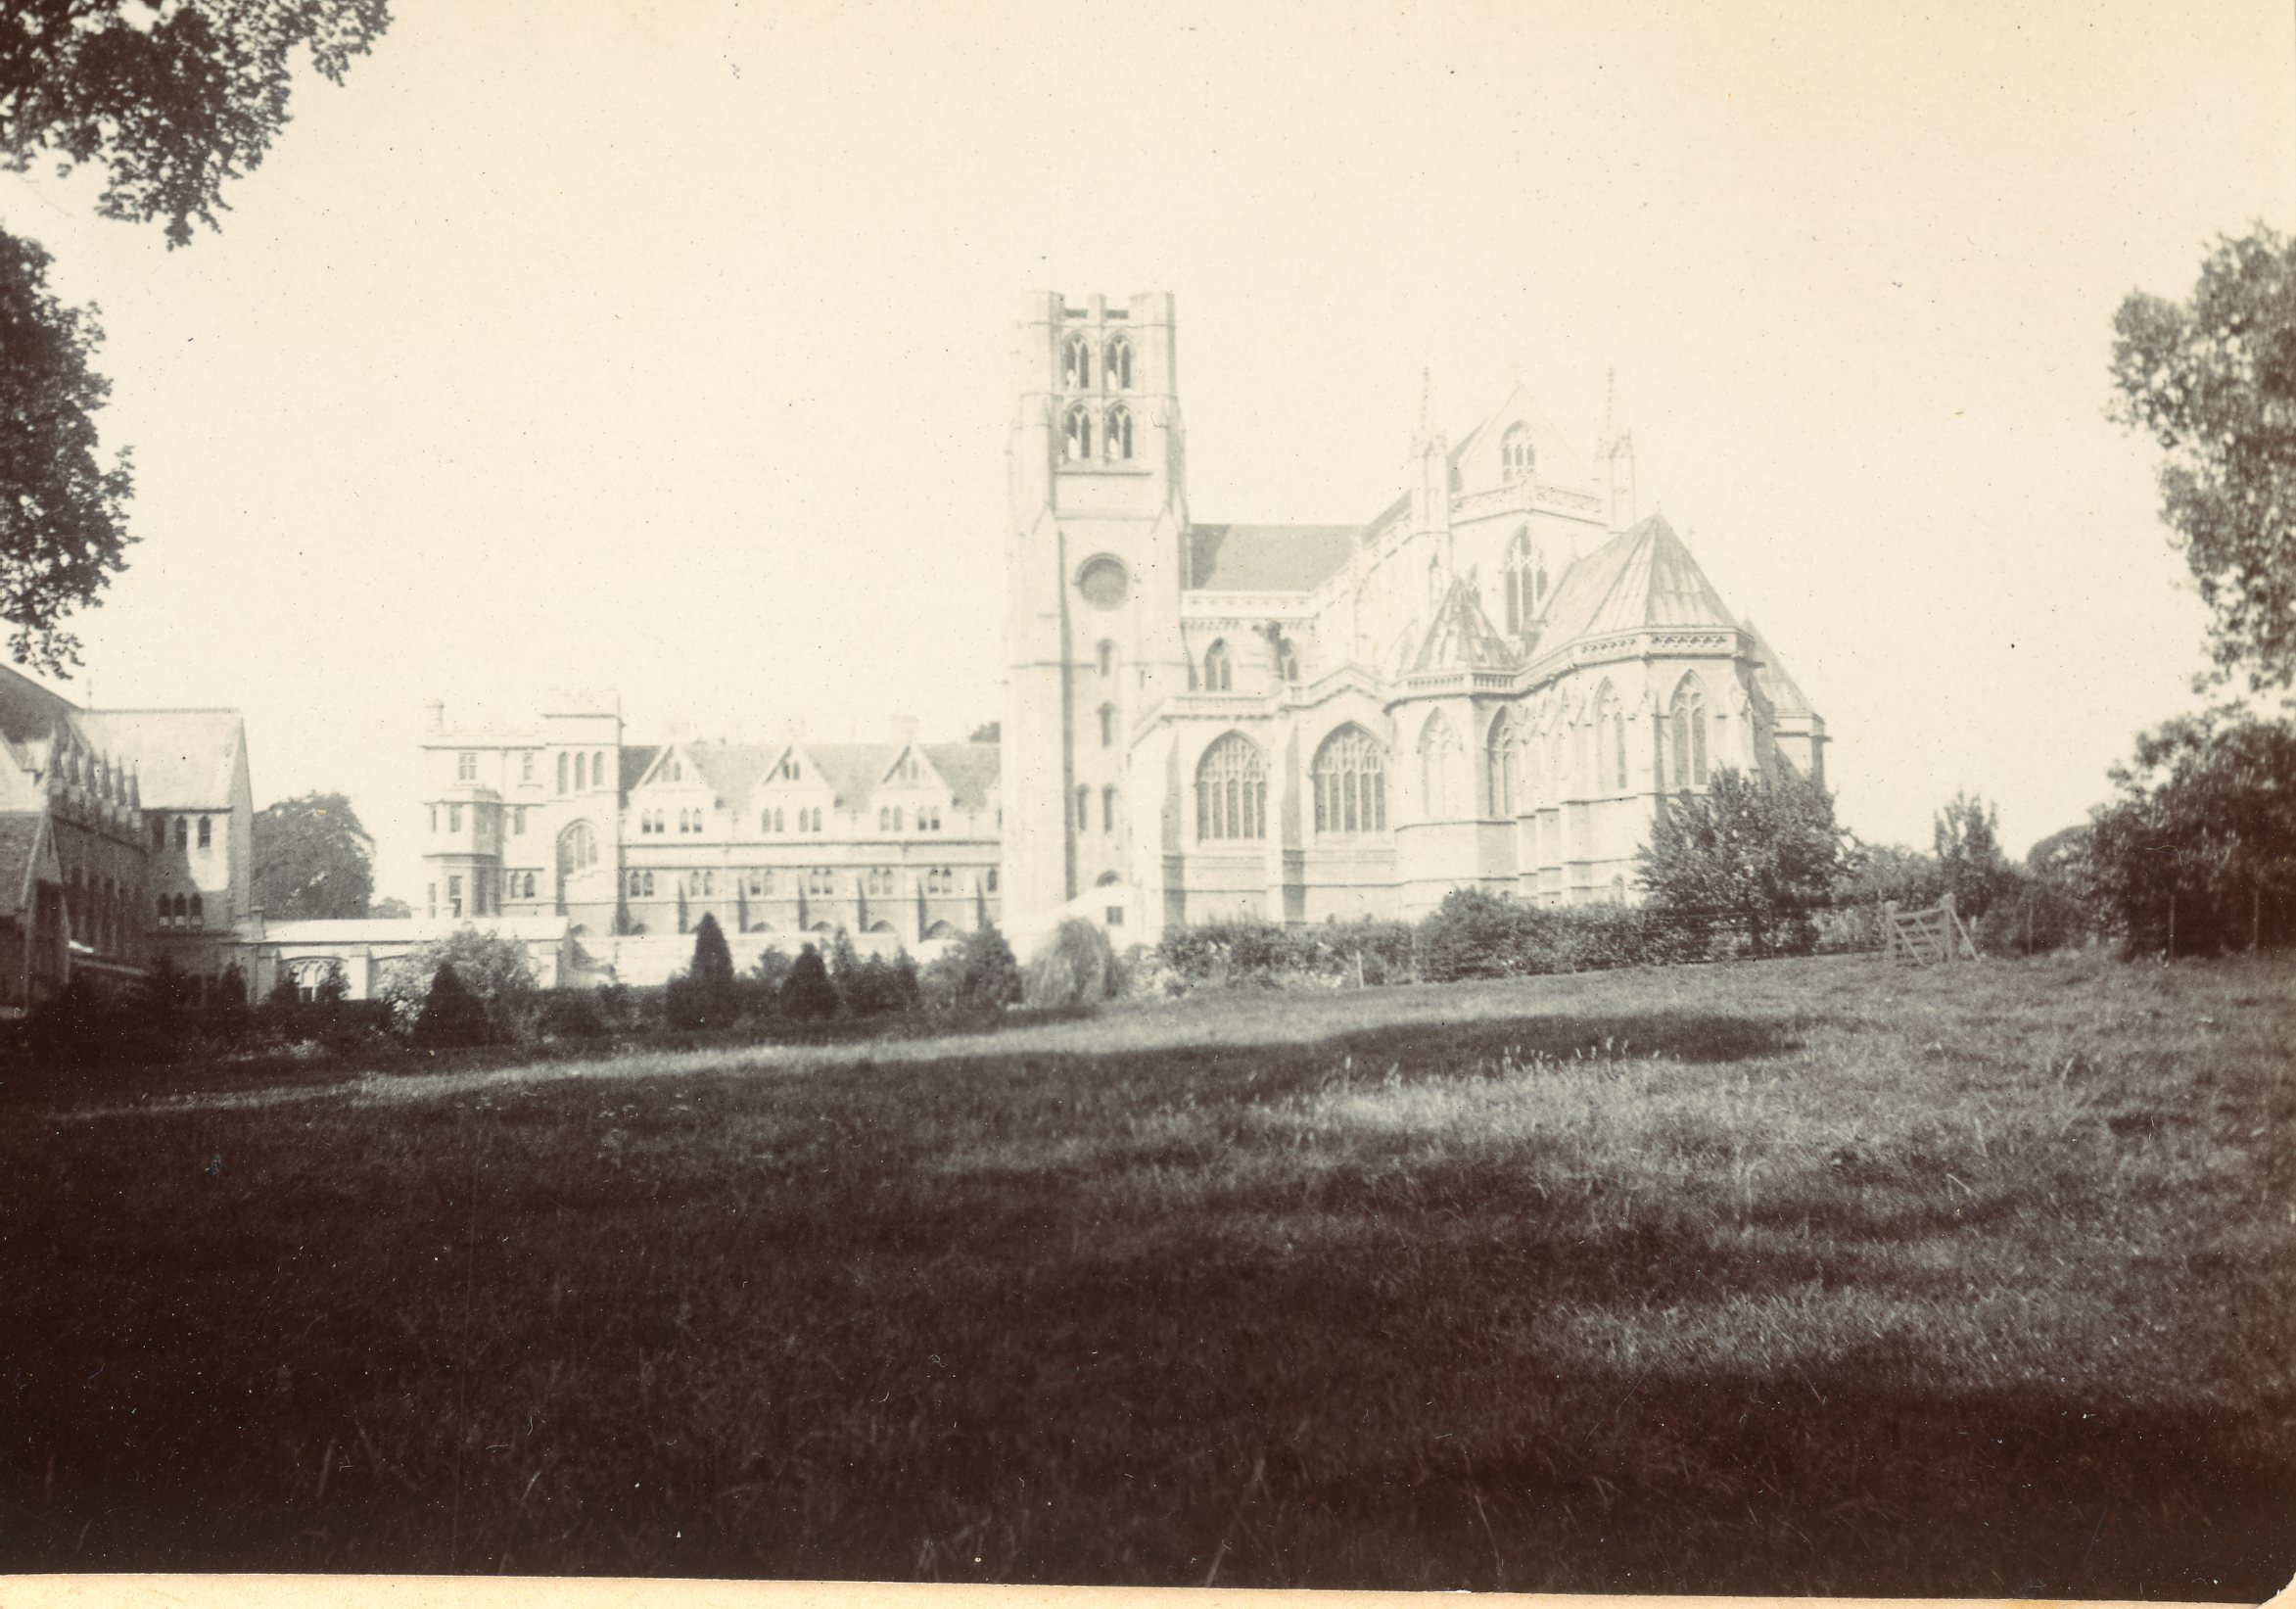 Old black and white photograph of Downside Abbey